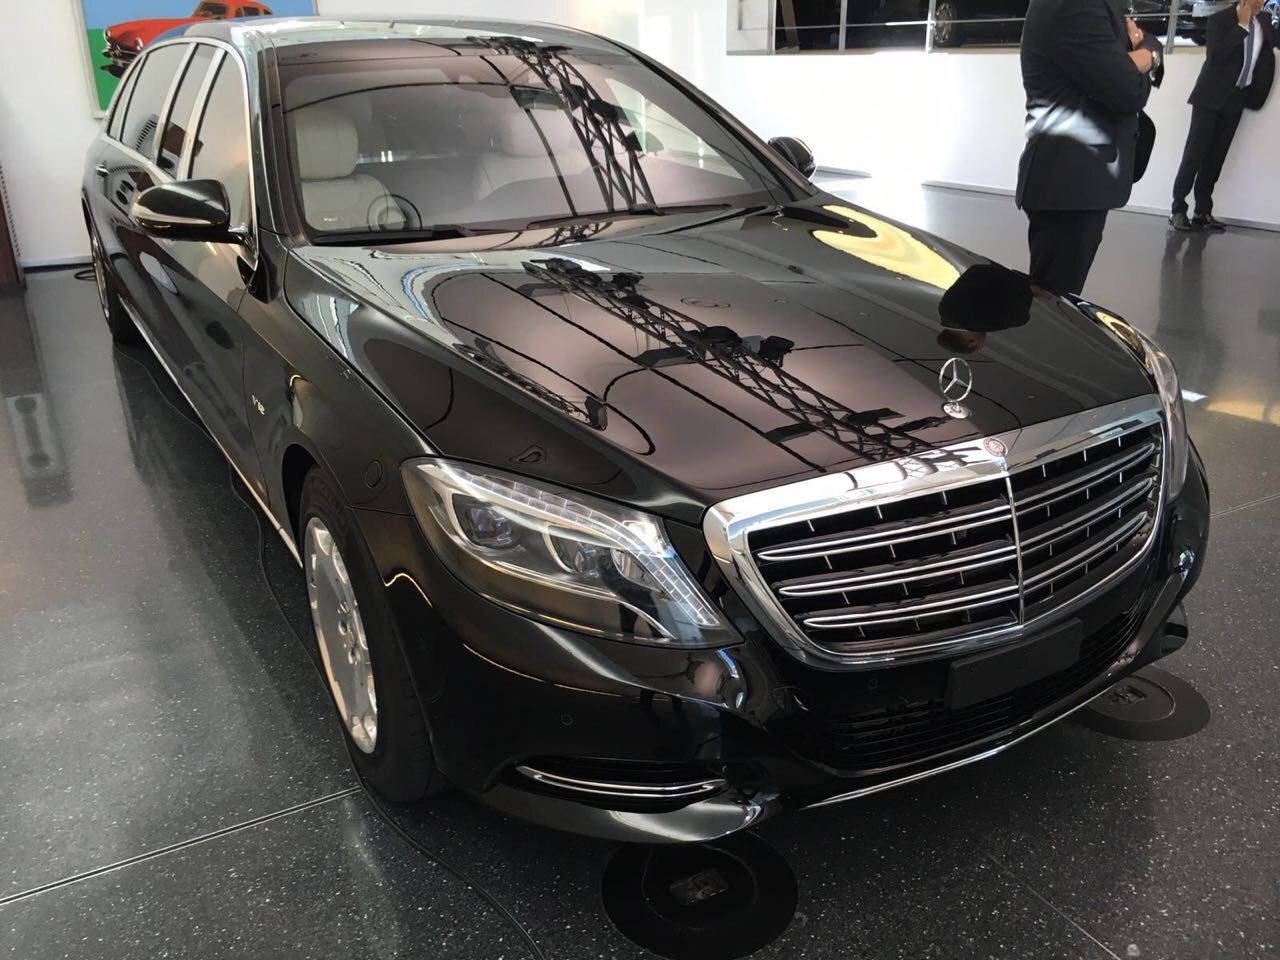 Brand new factory armored Mercedes-Maybach S600 Vv222 Guard